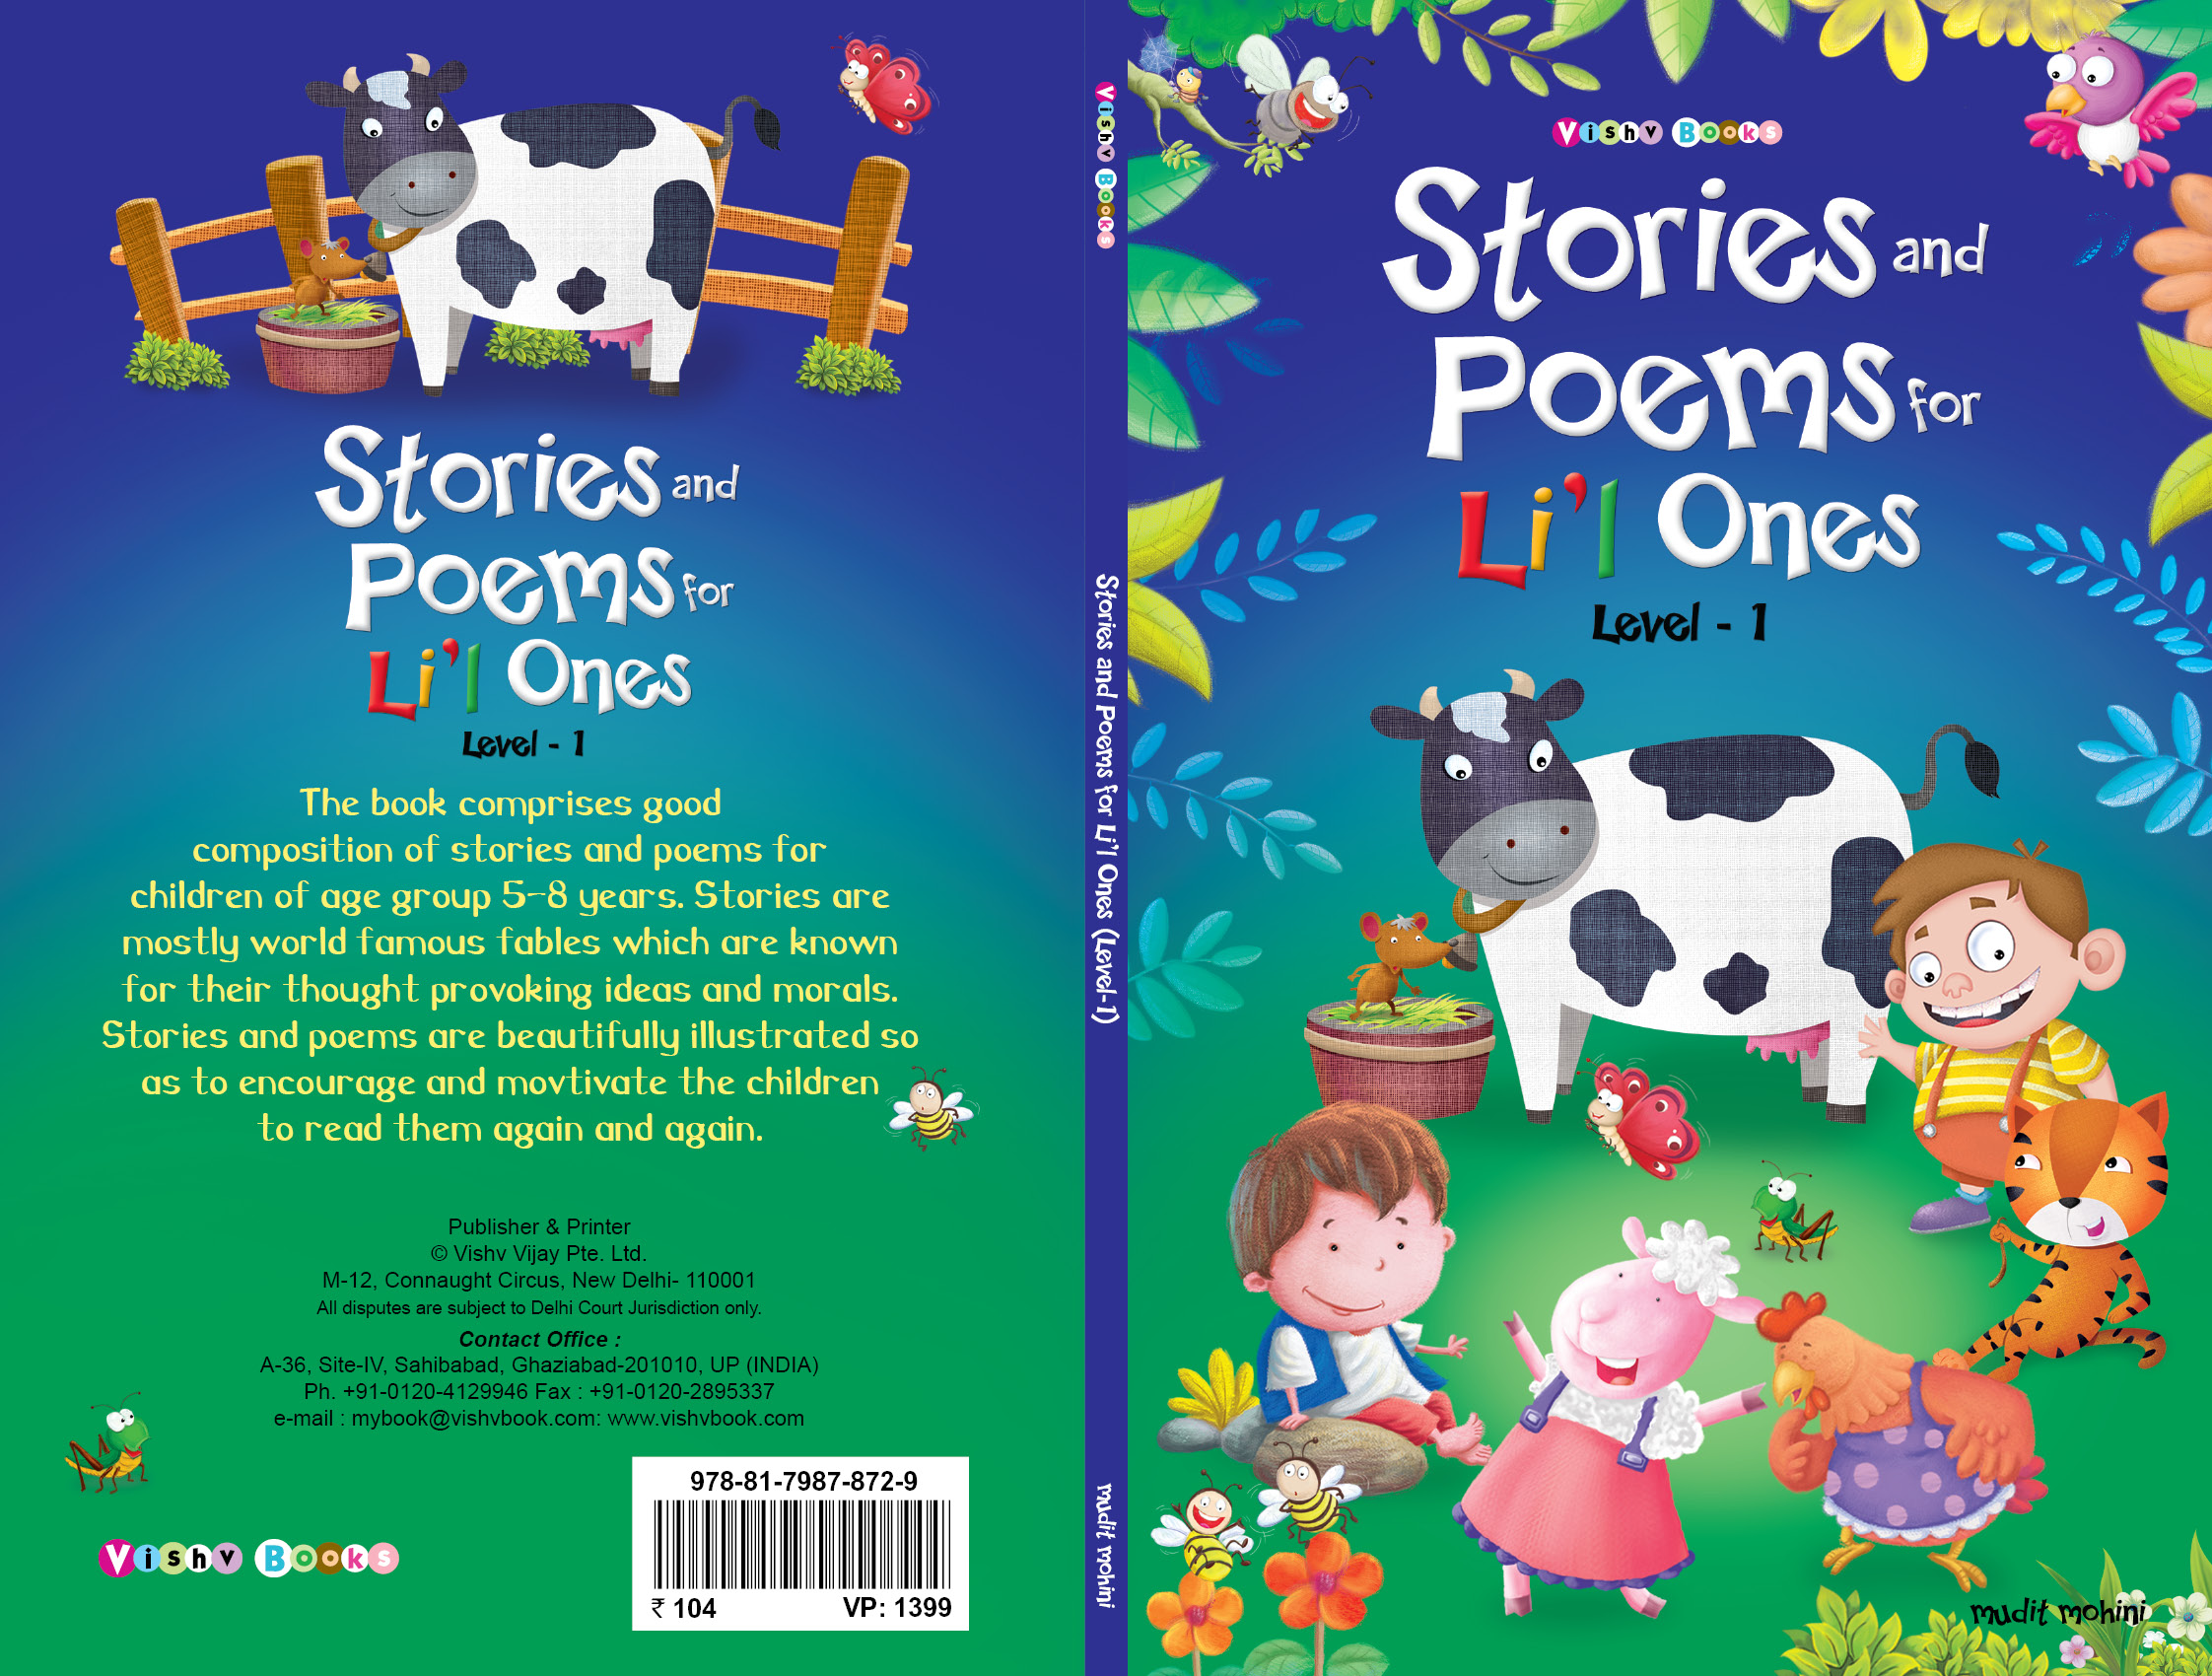 Kids Story Book Cover : Children book cover by devesh sharma at coroflot